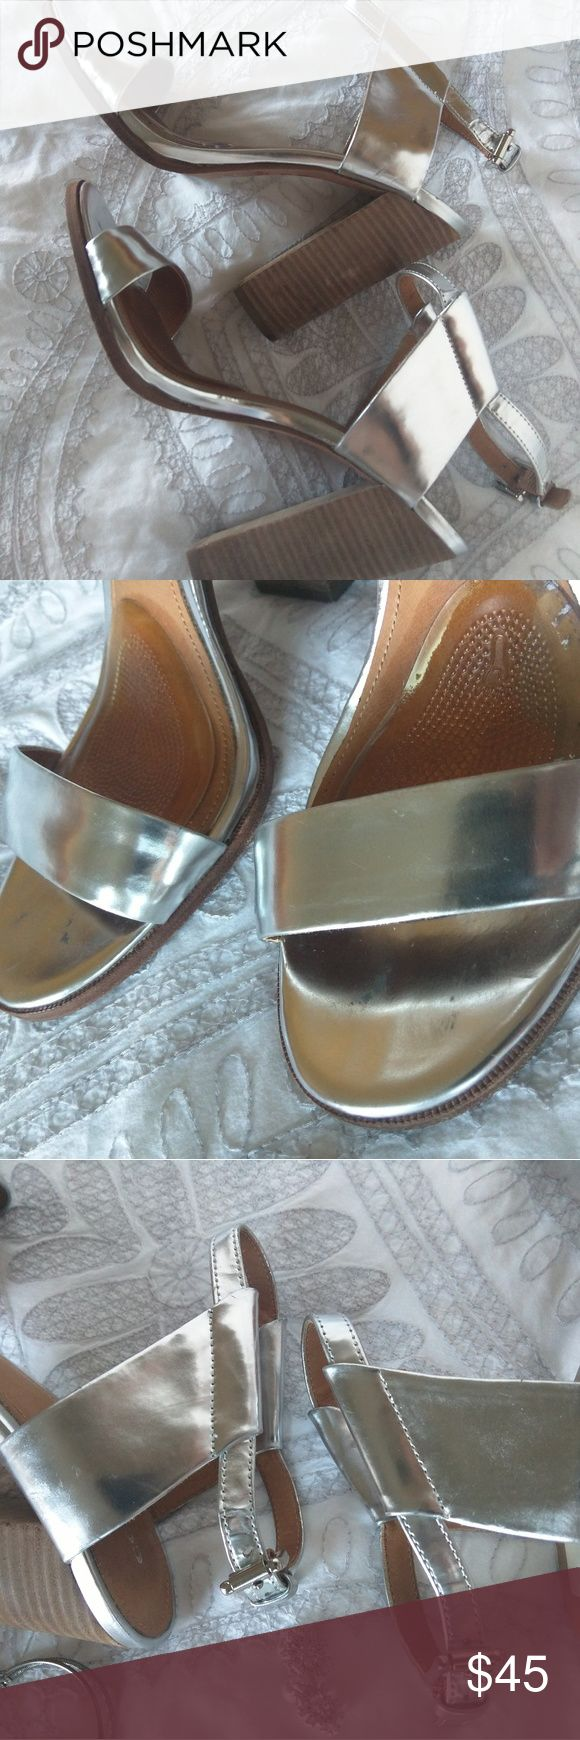 """Coach Lexey  Silver Block Heel Sandals Coach Lexey silver block heel sandals perfect for spring and summer. Minimal signs of wear.  Please note  the have gel pads (I will include a new pair when sold in case they're needed).  Size 10B. Made in China.  Heel: 4.5"""" inches Coach Shoes Heels"""